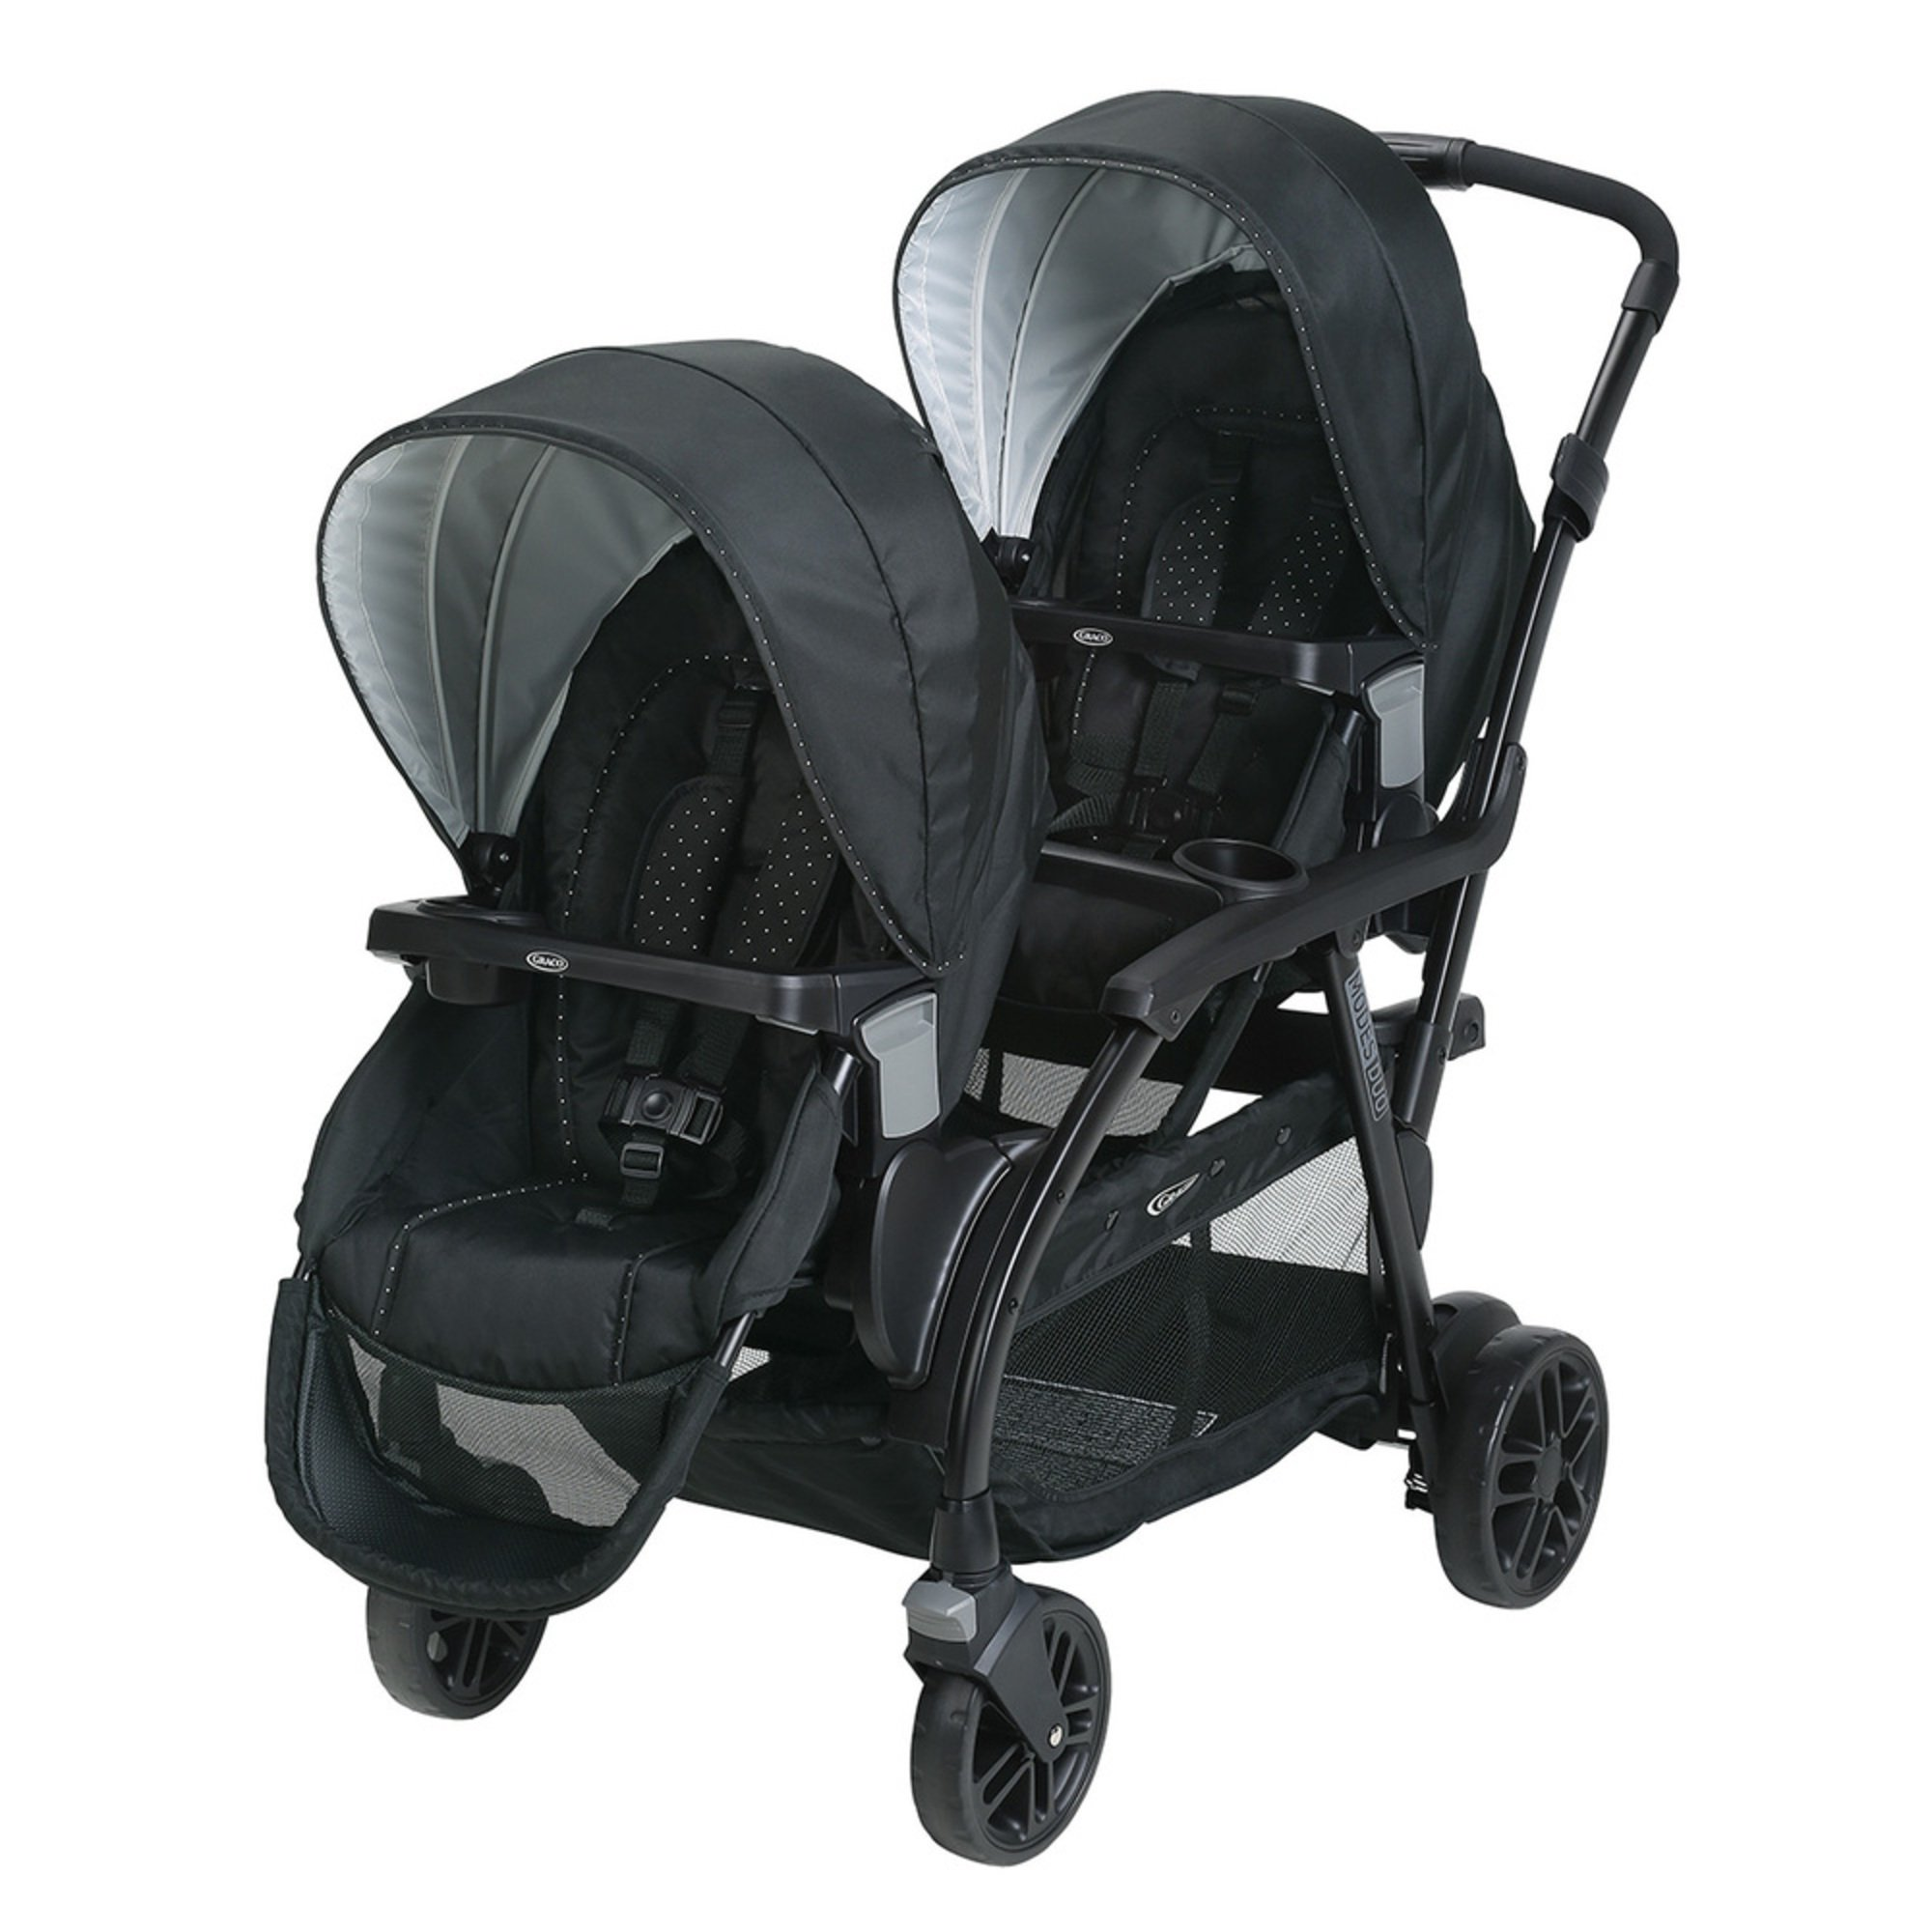 Graco Modes Duo Stroller Double Multiple Strollers Baby Kids Toys Shop Your Navy Exchange Official Site